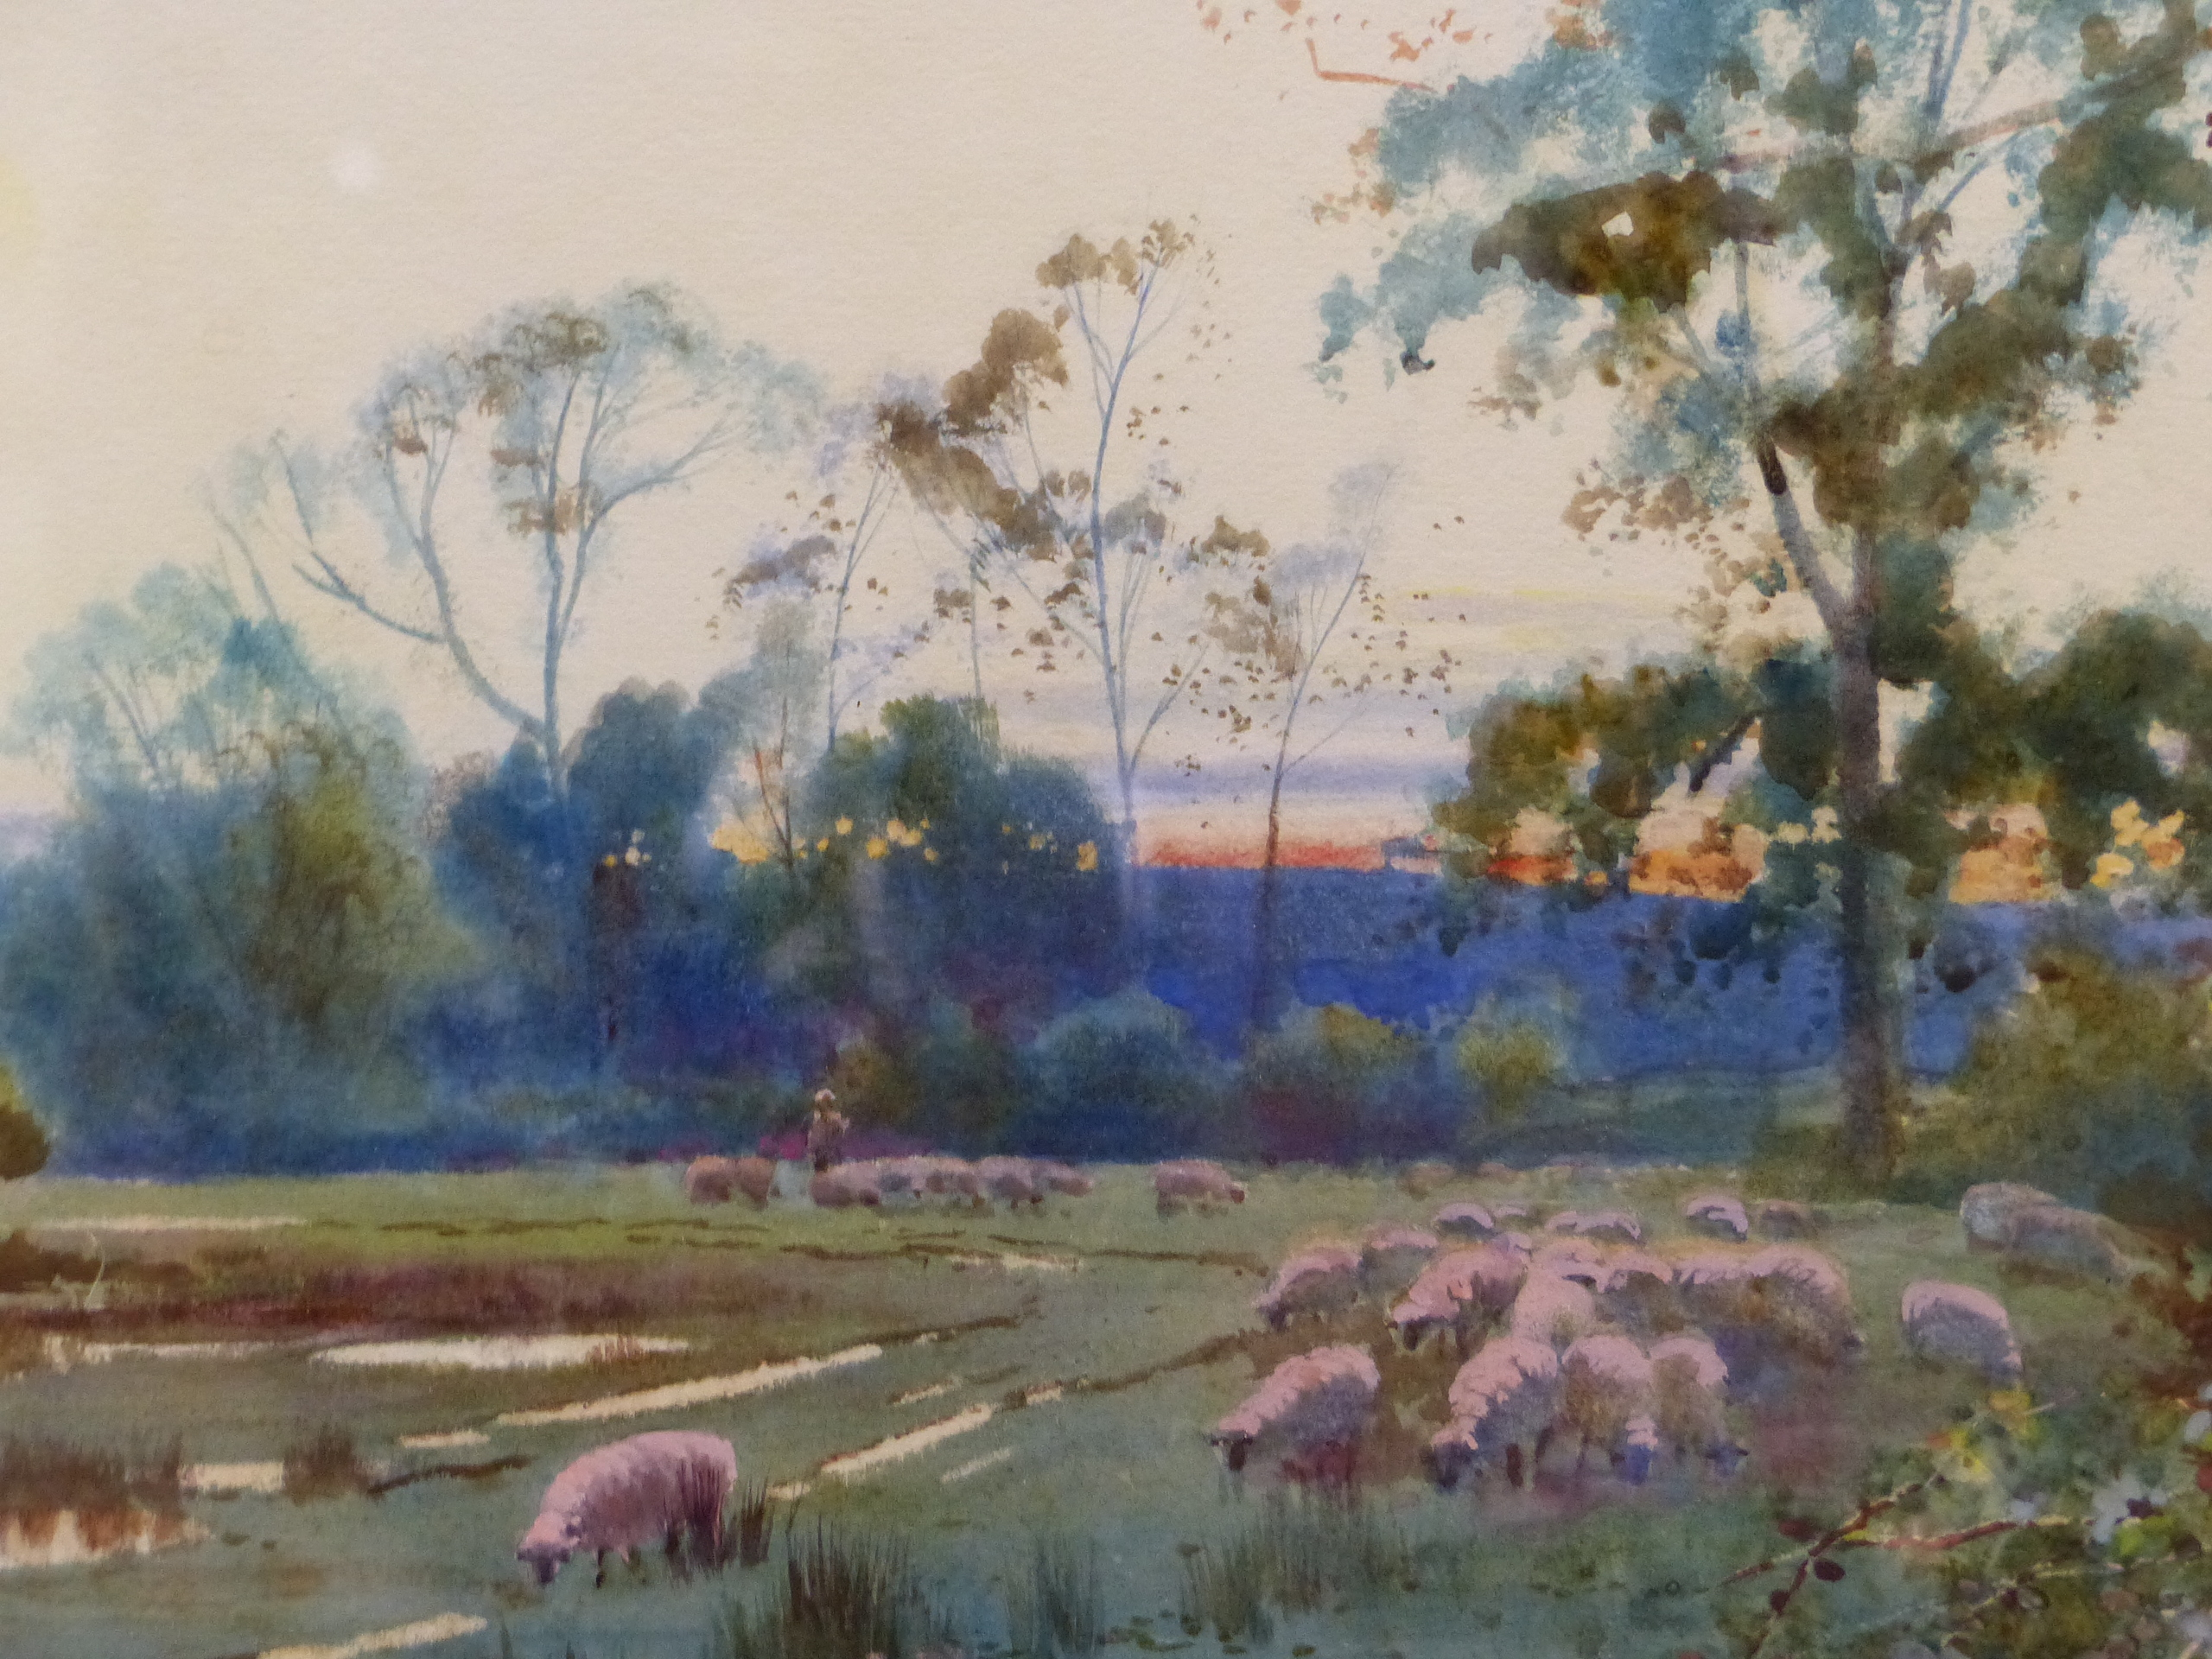 WILLIAM MATHISON (1853 - 1926) SHEEP IN THE WATER MEADOW. SIGNED WATERCOLOUR 48 x 72cm - Image 2 of 21